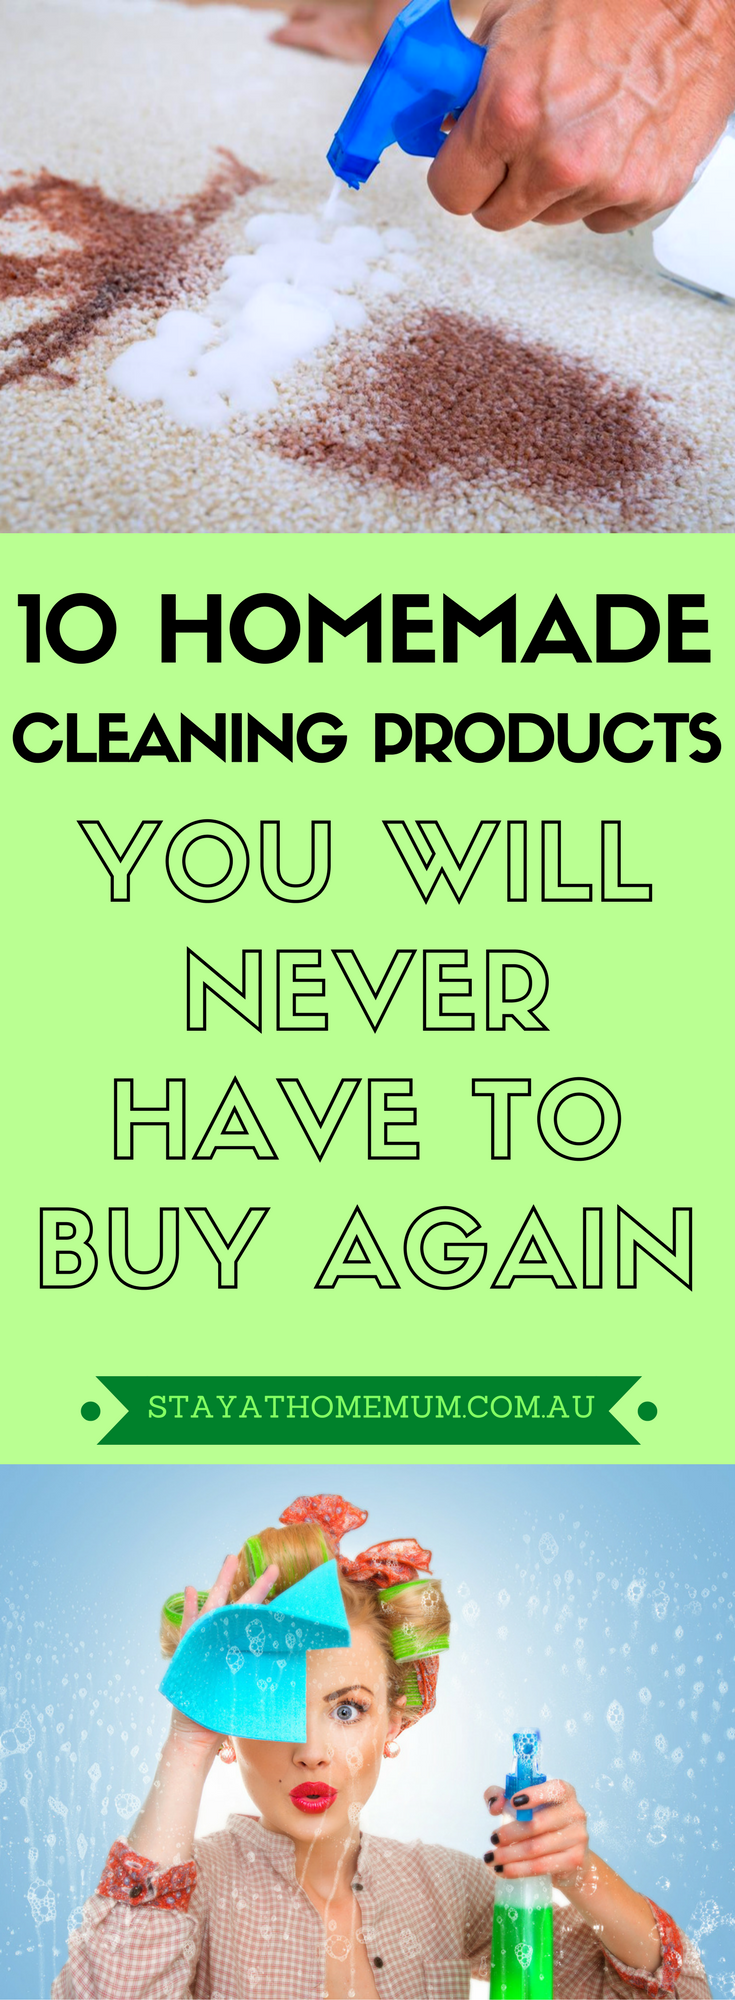 10 Homemade Cleaning Products You Will Never Have to Buy Again